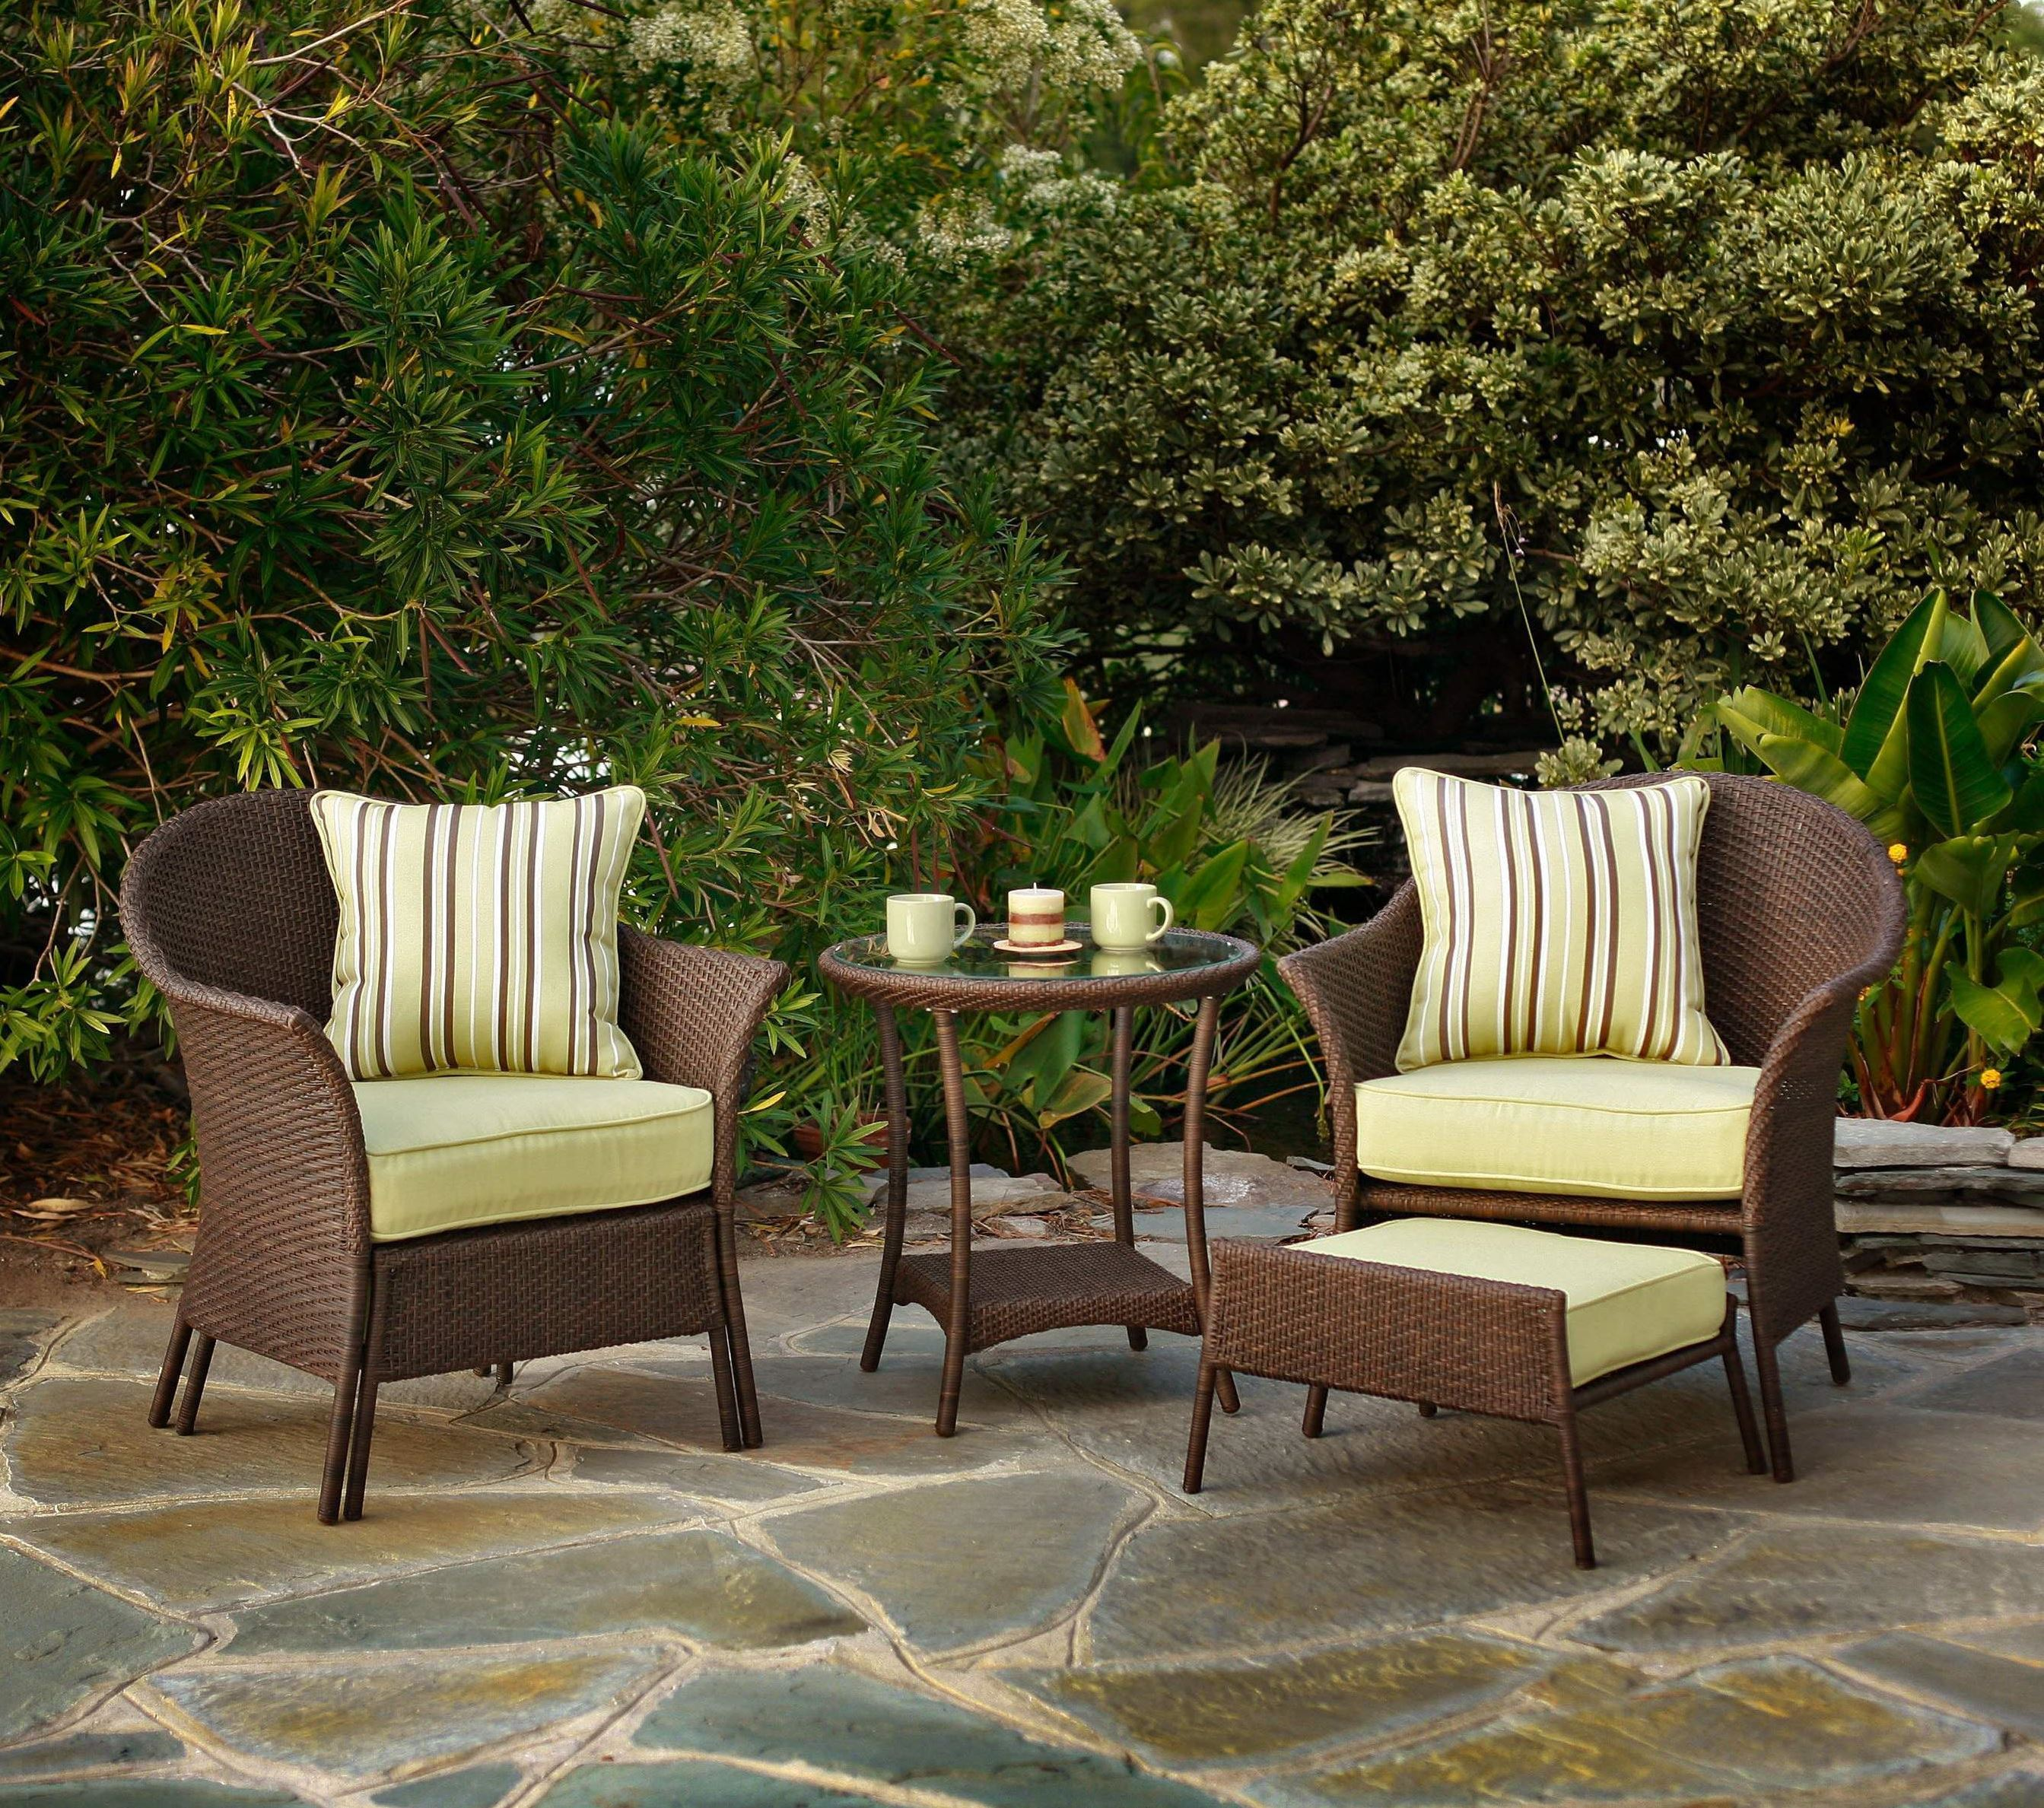 Proper Care Can Make Outdoor Furniture Last The Blade